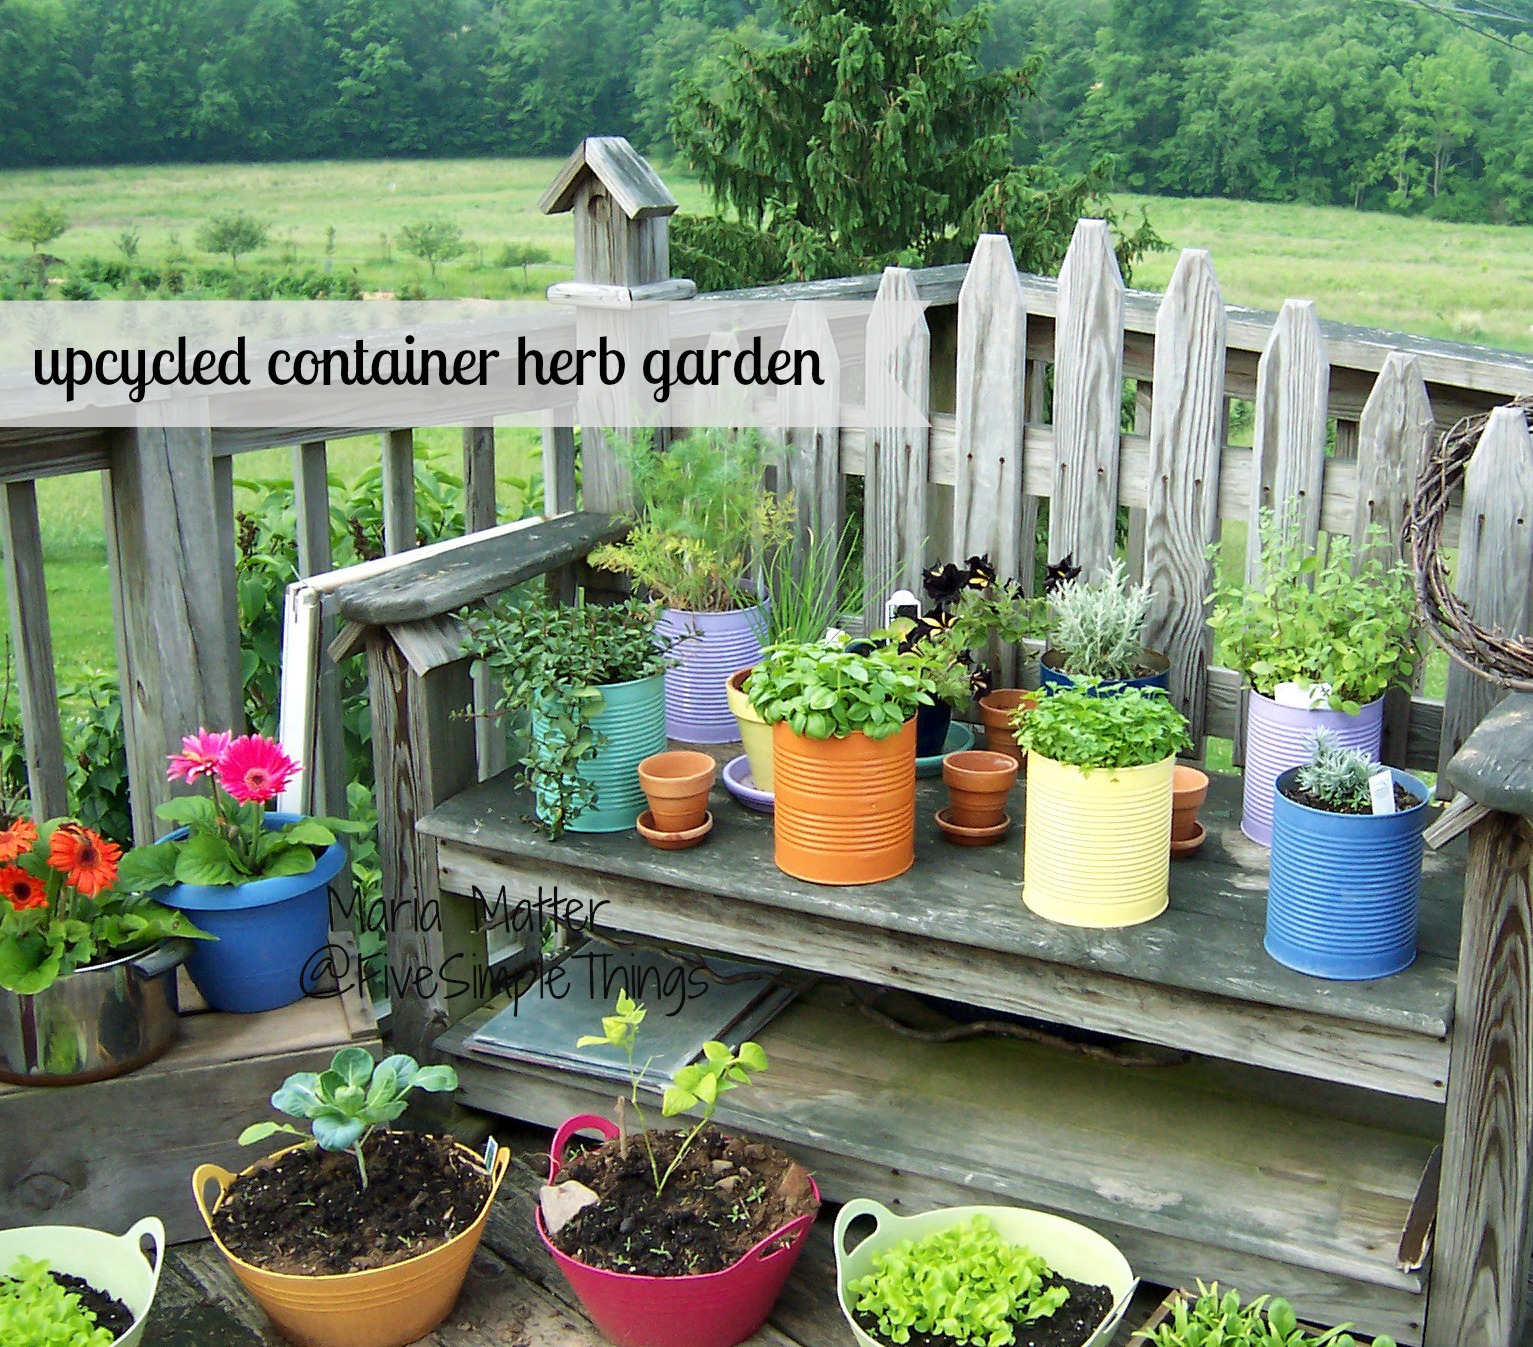 Herb Garden Container Five Simple Things Upcycled Container Herb Garden Herbs 101